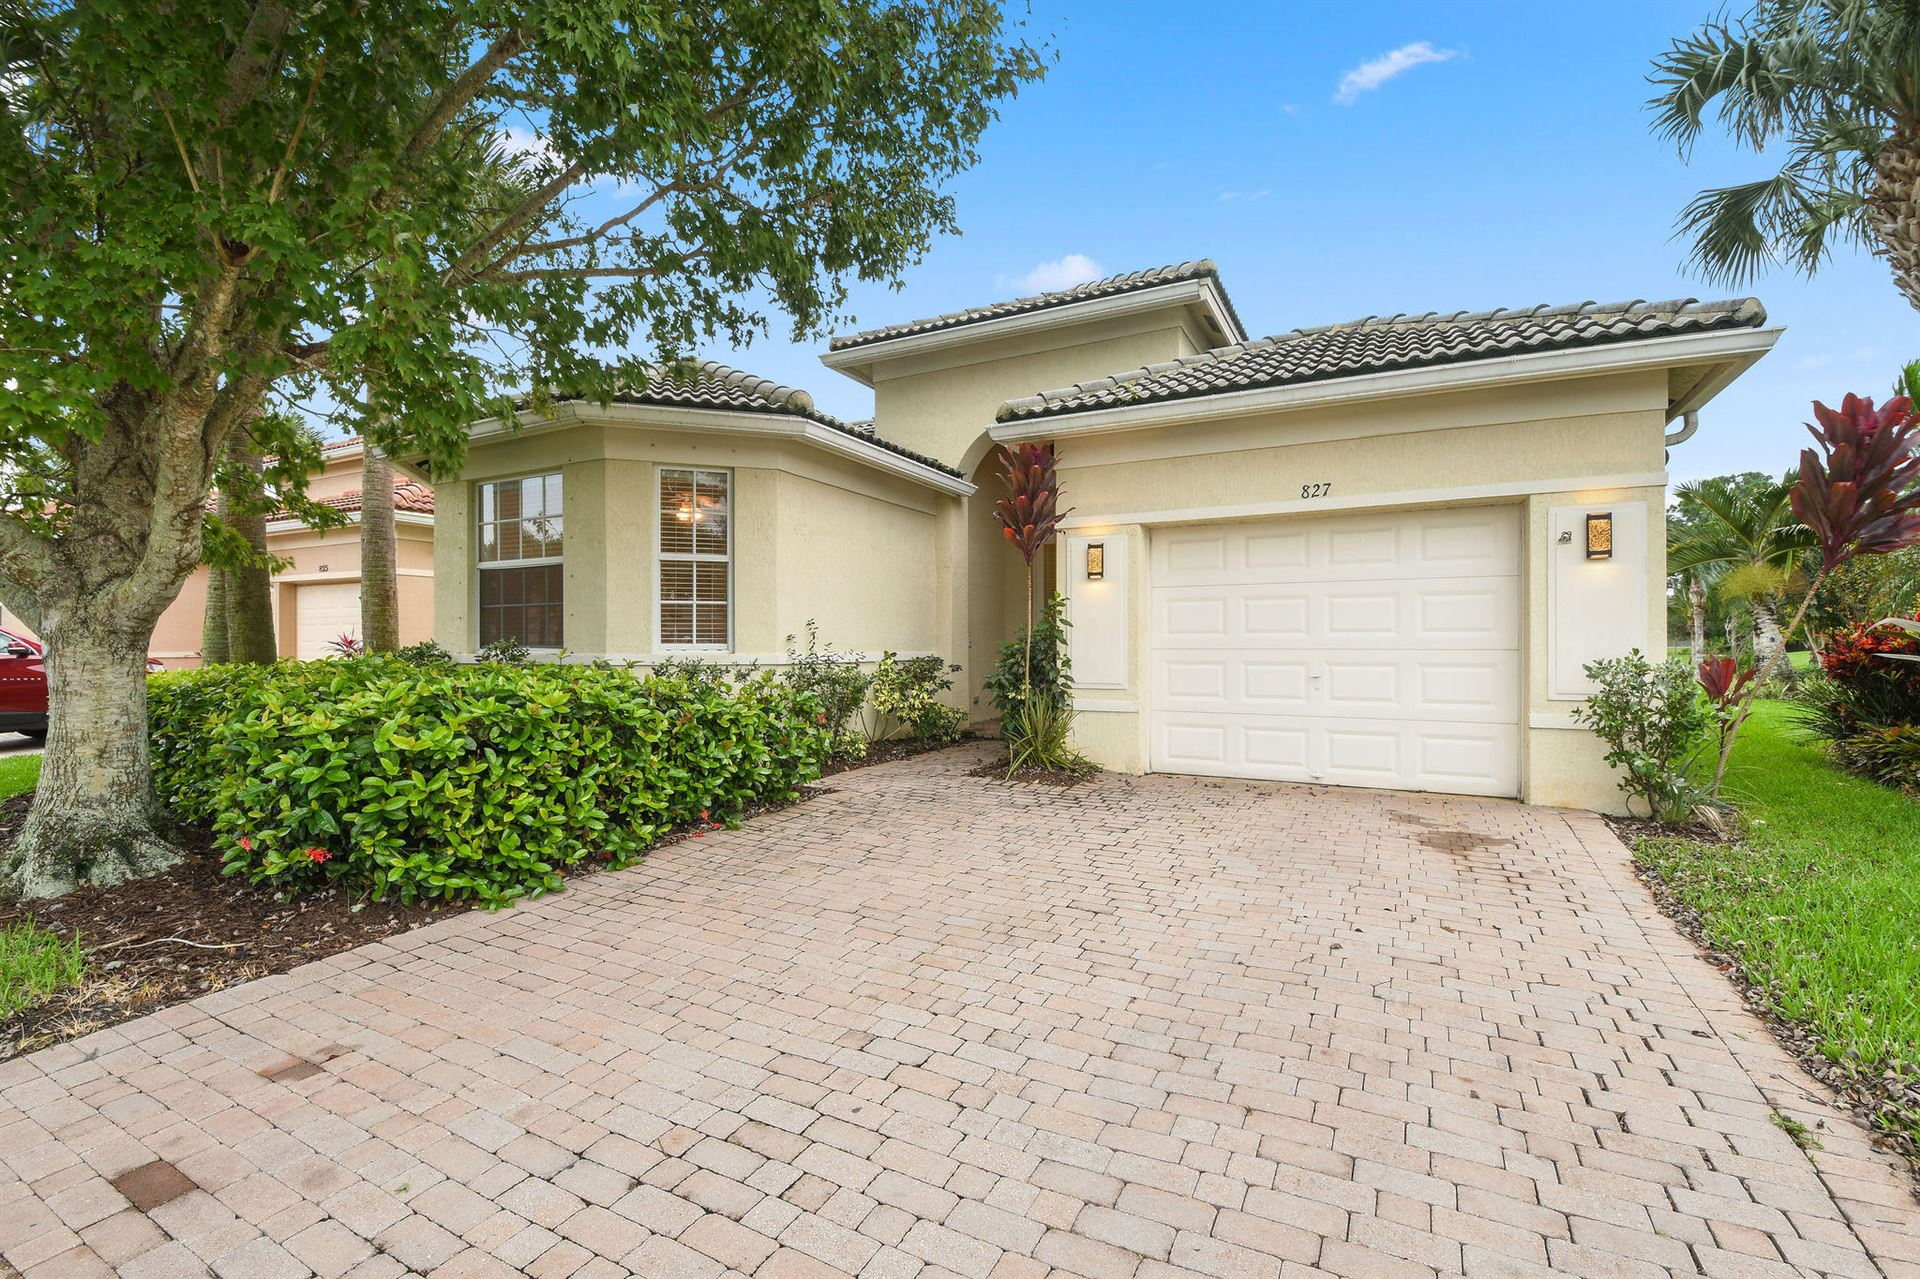 827 NW Rutherford Court, Port Saint Lucie, FL 34983 - #: RX-10664484